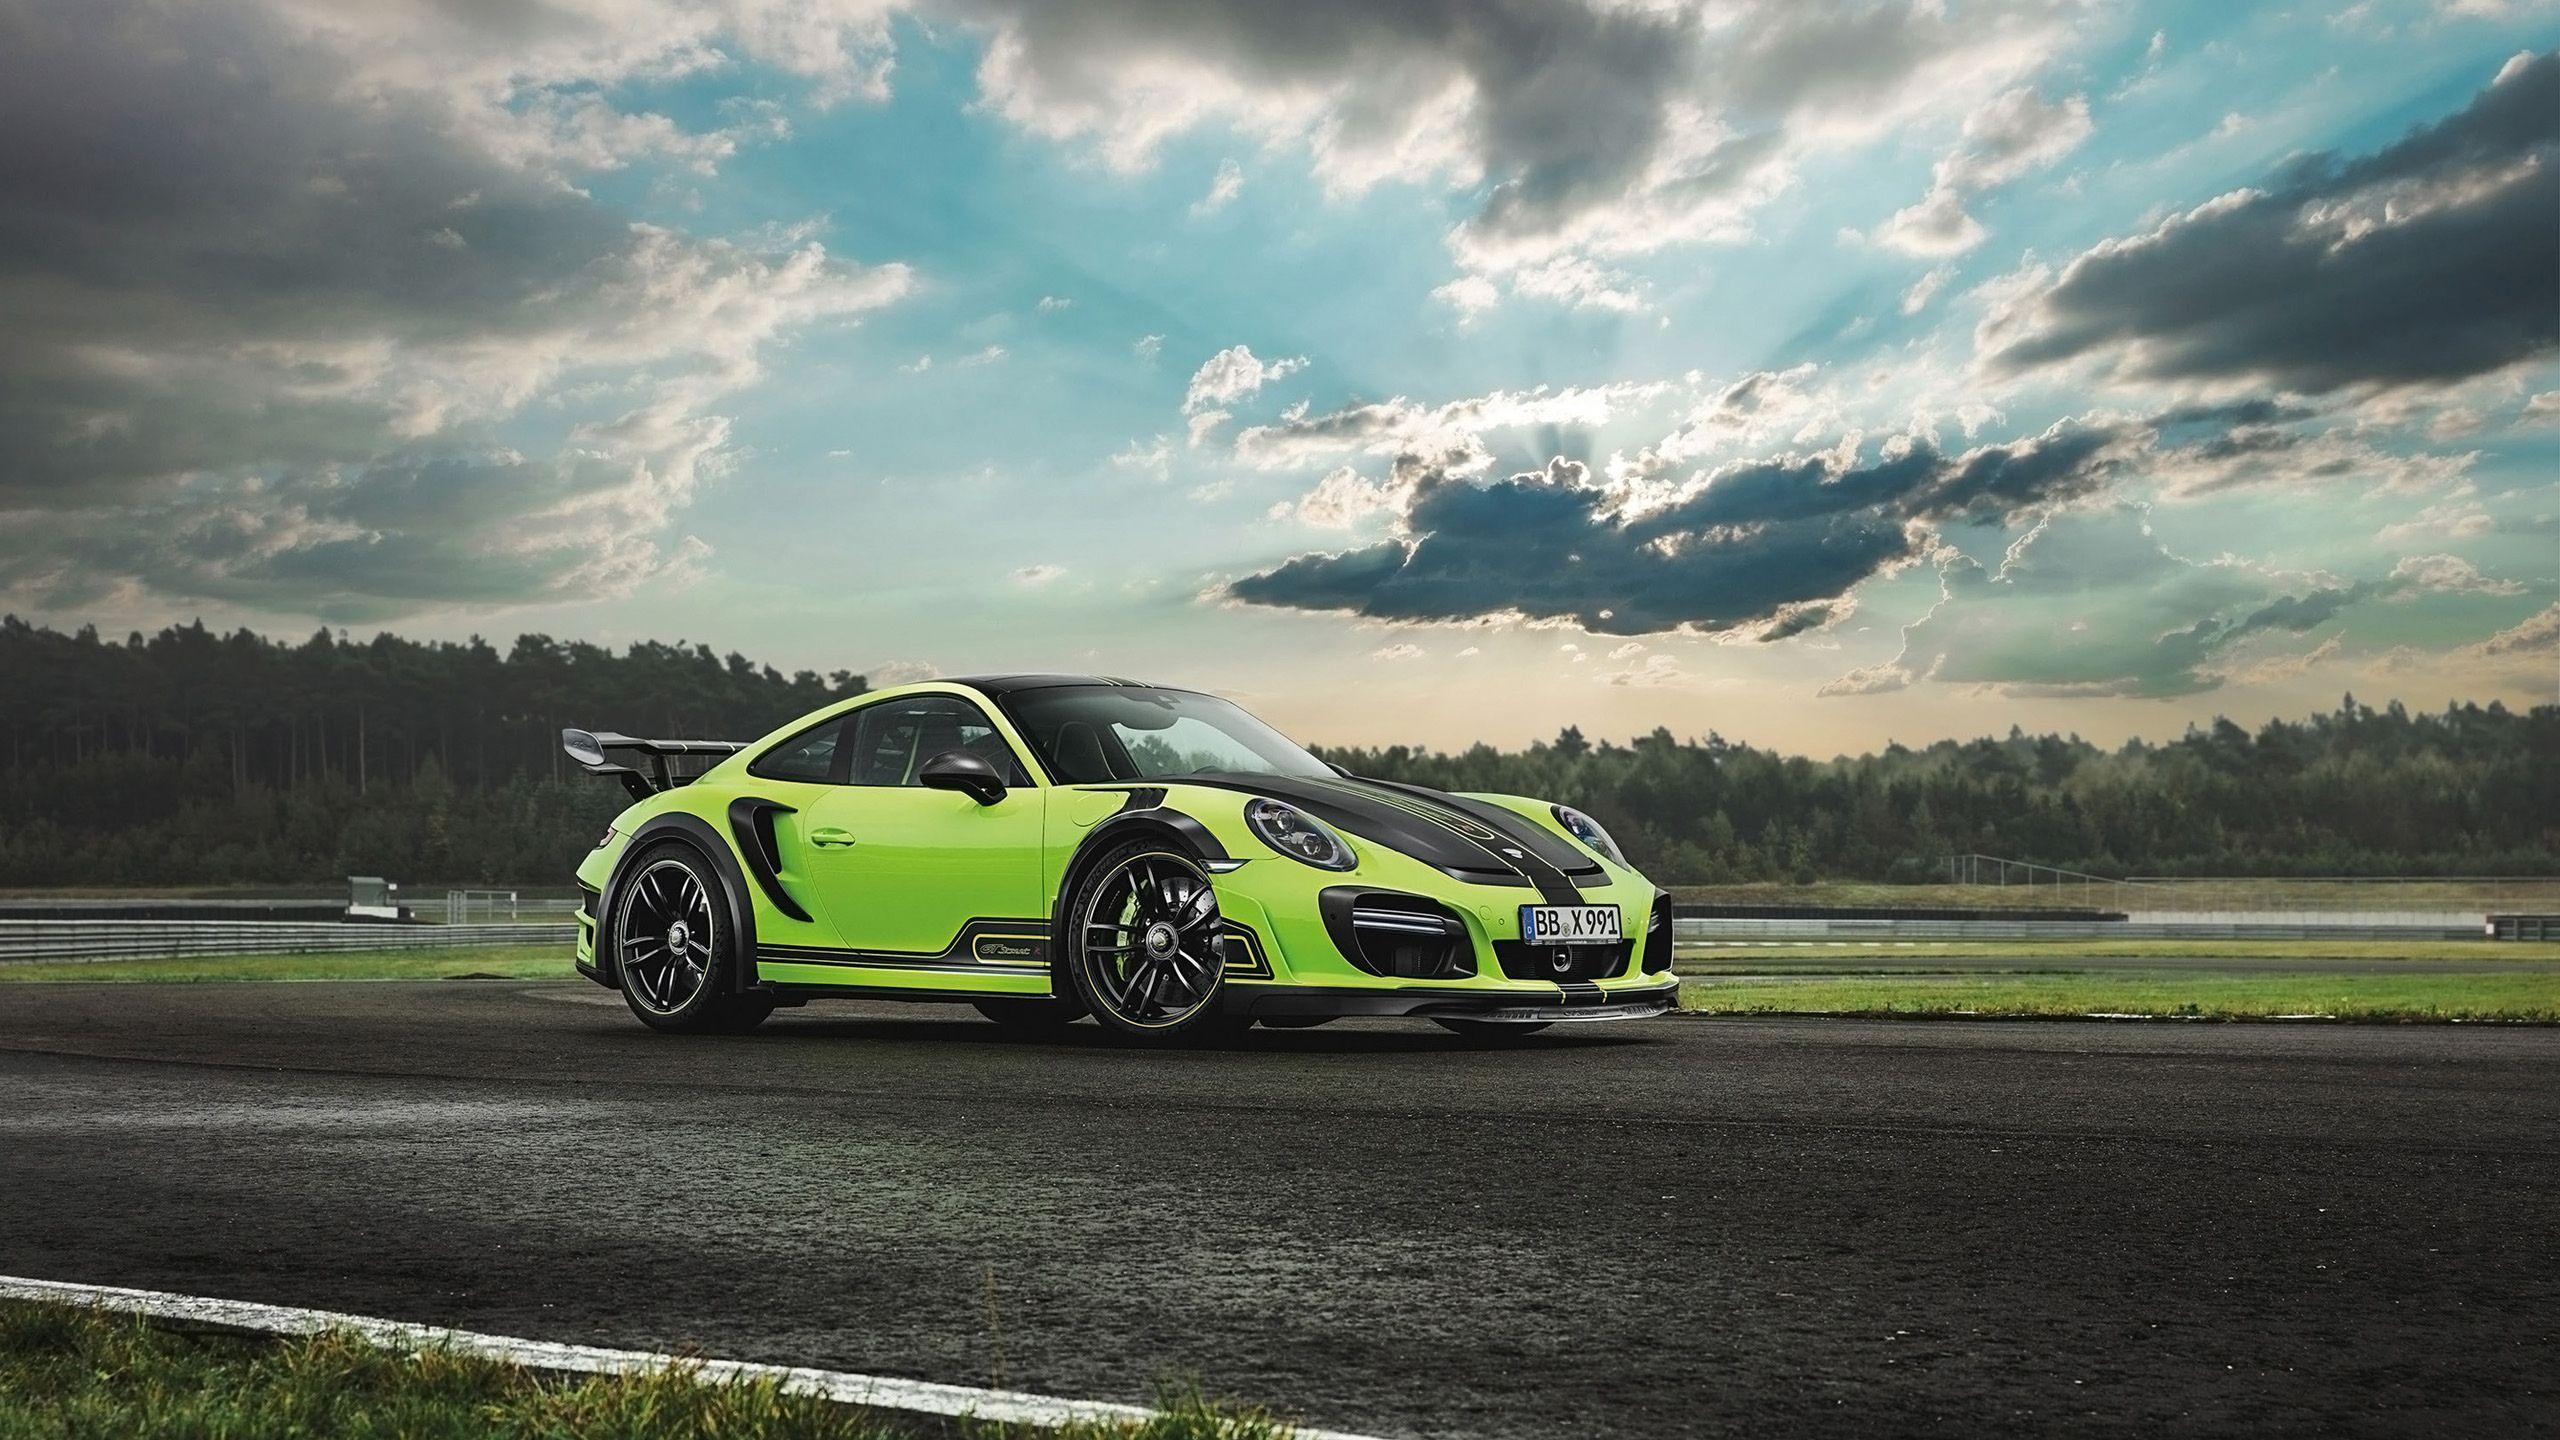 2016 Porsche 911 Turbo, HD Cars, 4k Wallpapers, Image, Backgrounds